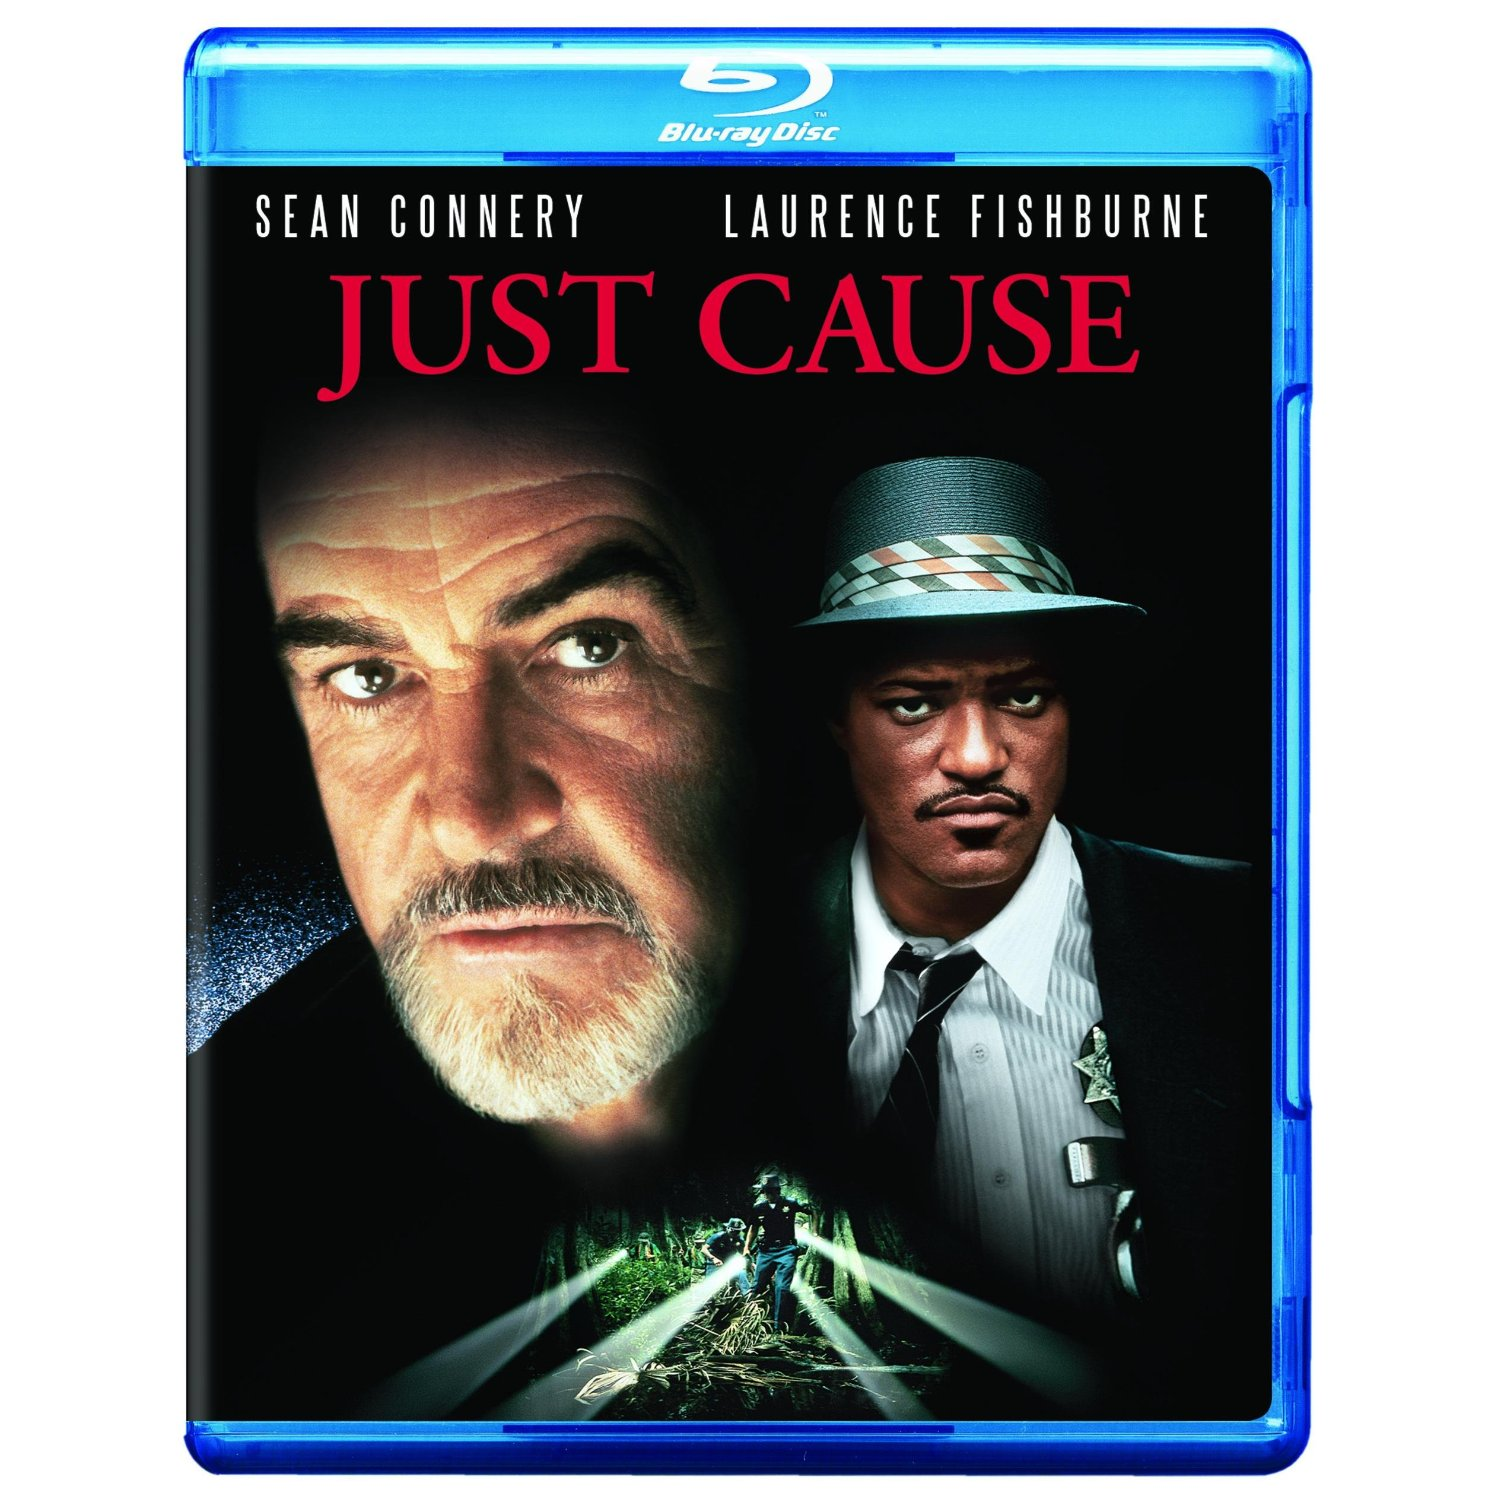 Just Cause on Blu-ray